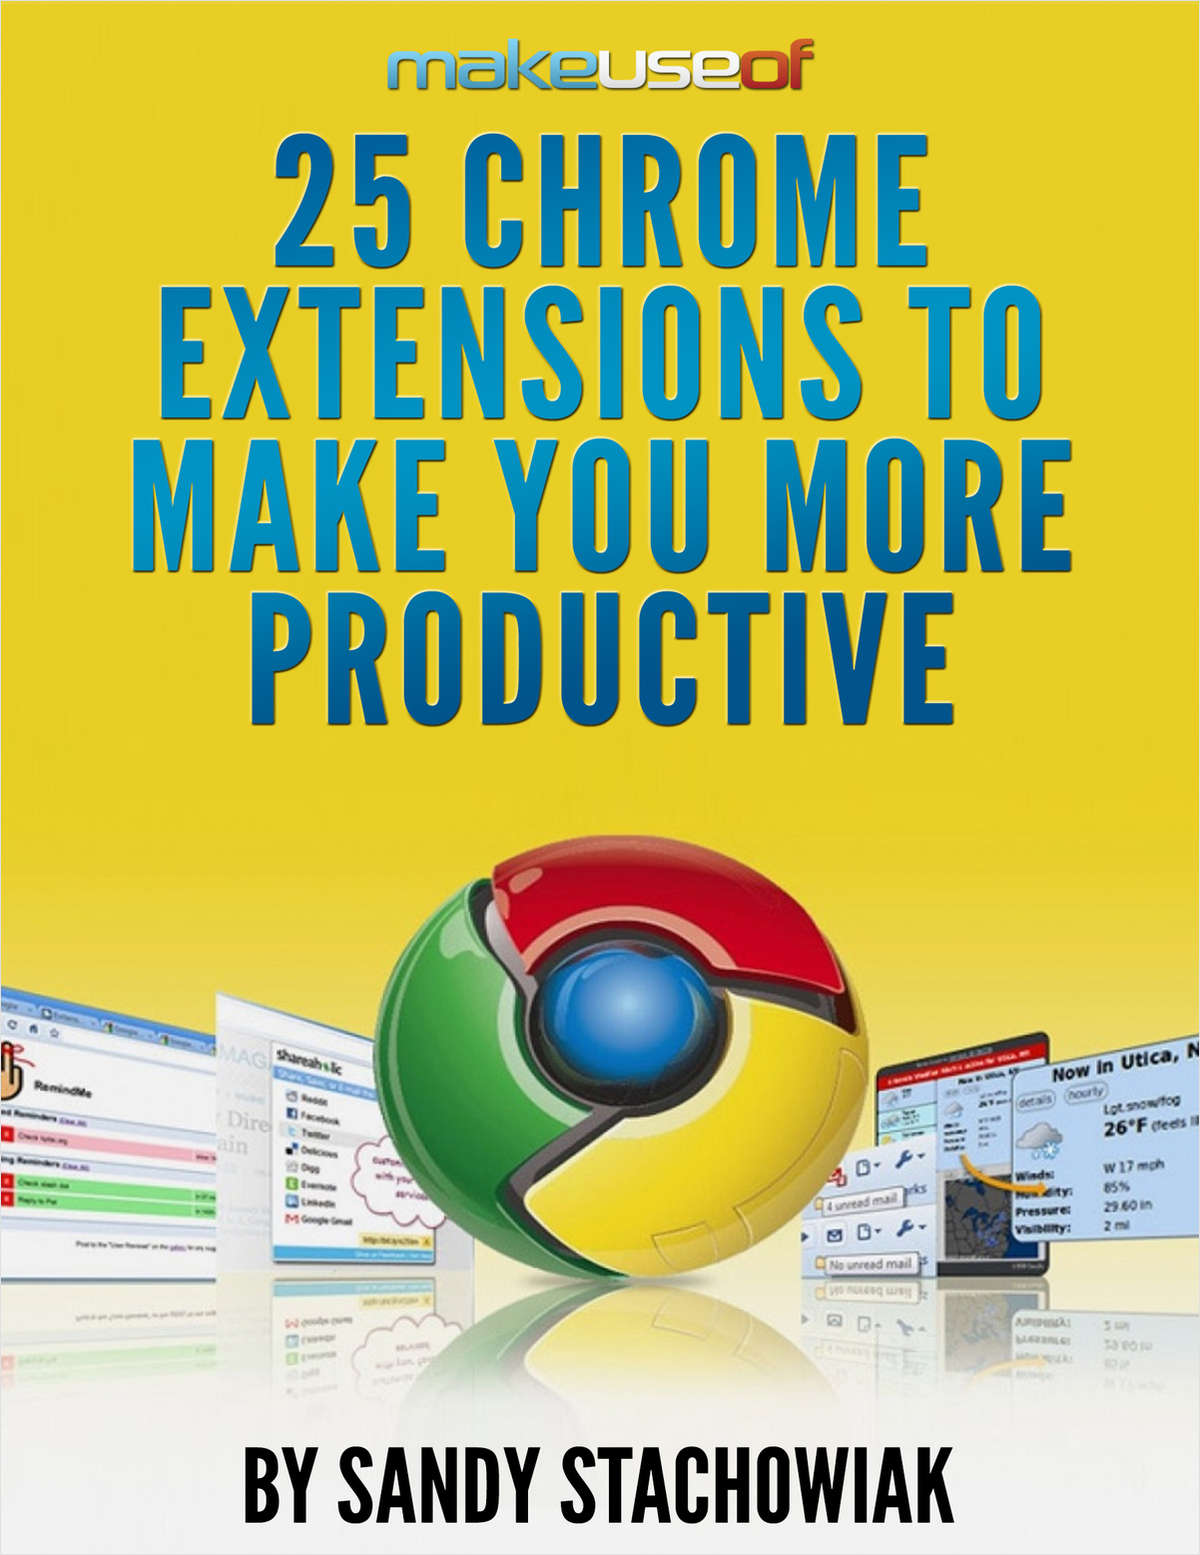 25 Chrome Extensions to Make You More Productive